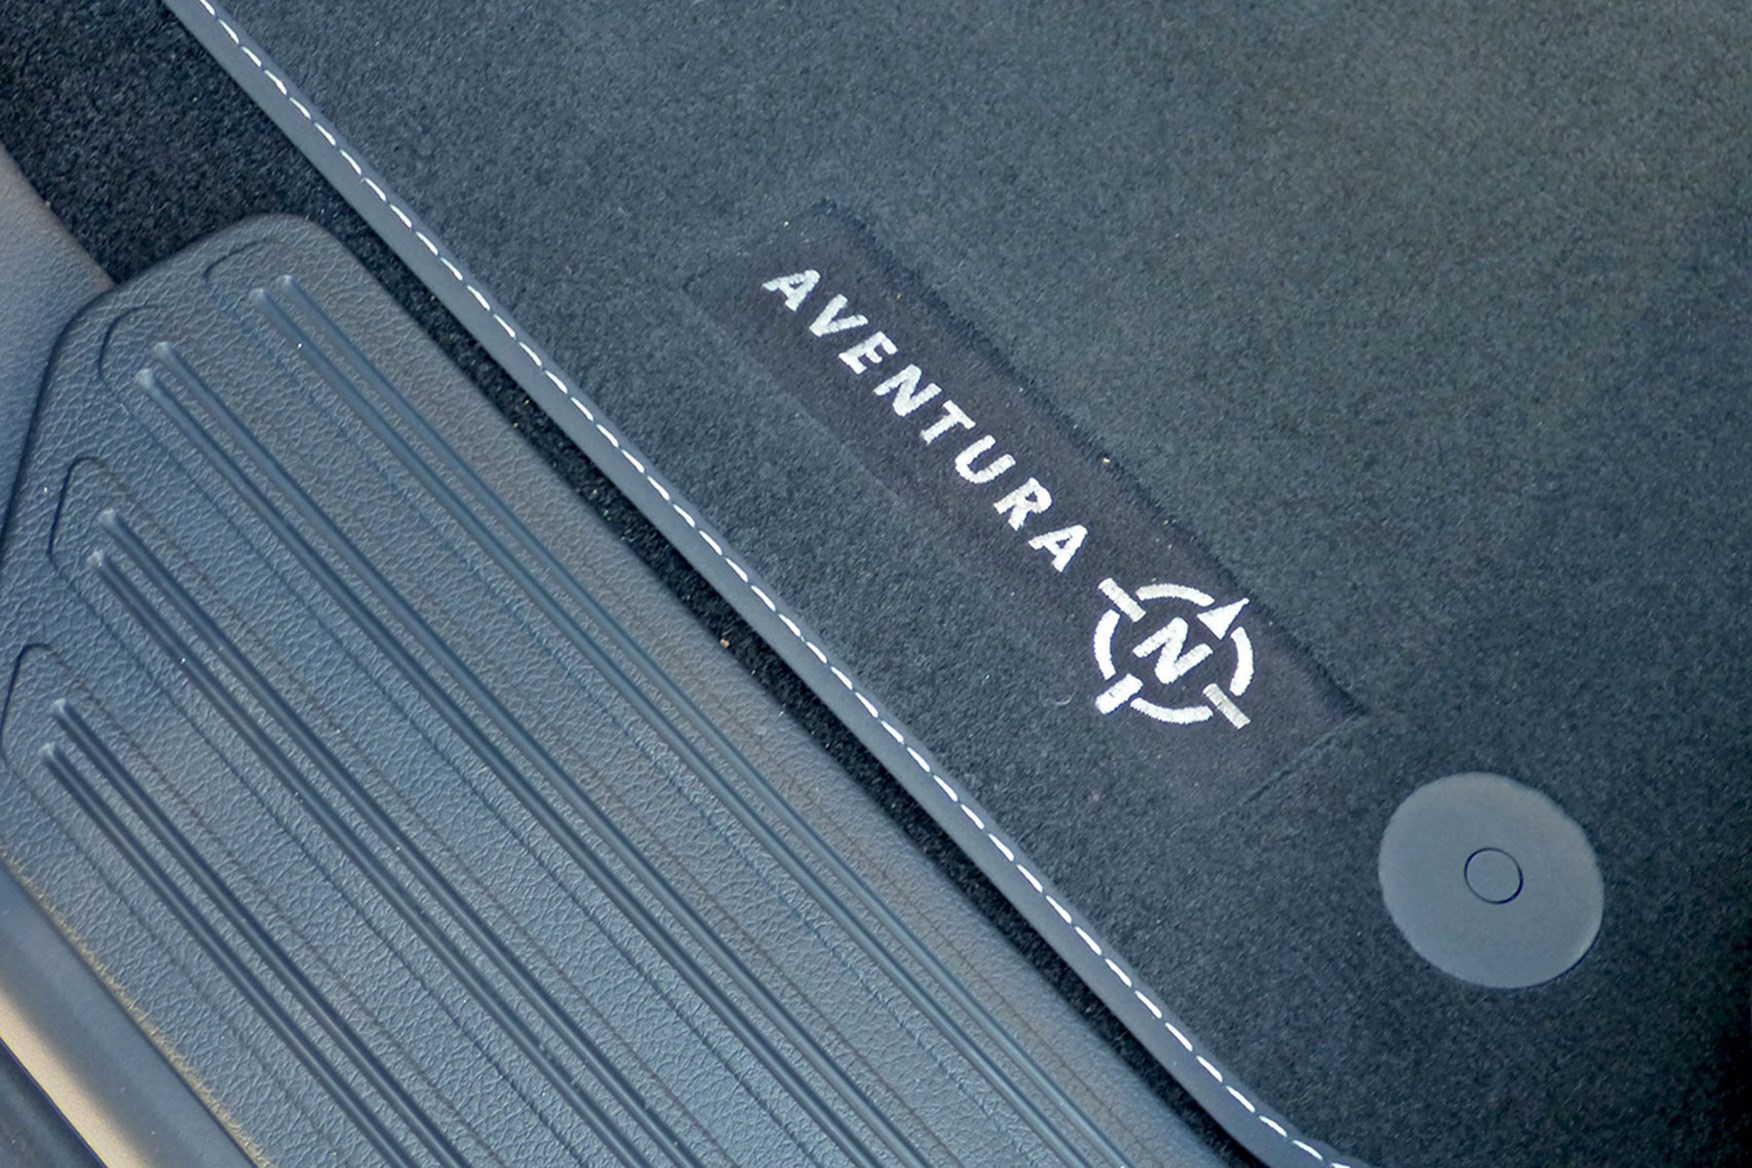 VW Amarok V6 Aventura 258hp review - bespoke floor mats